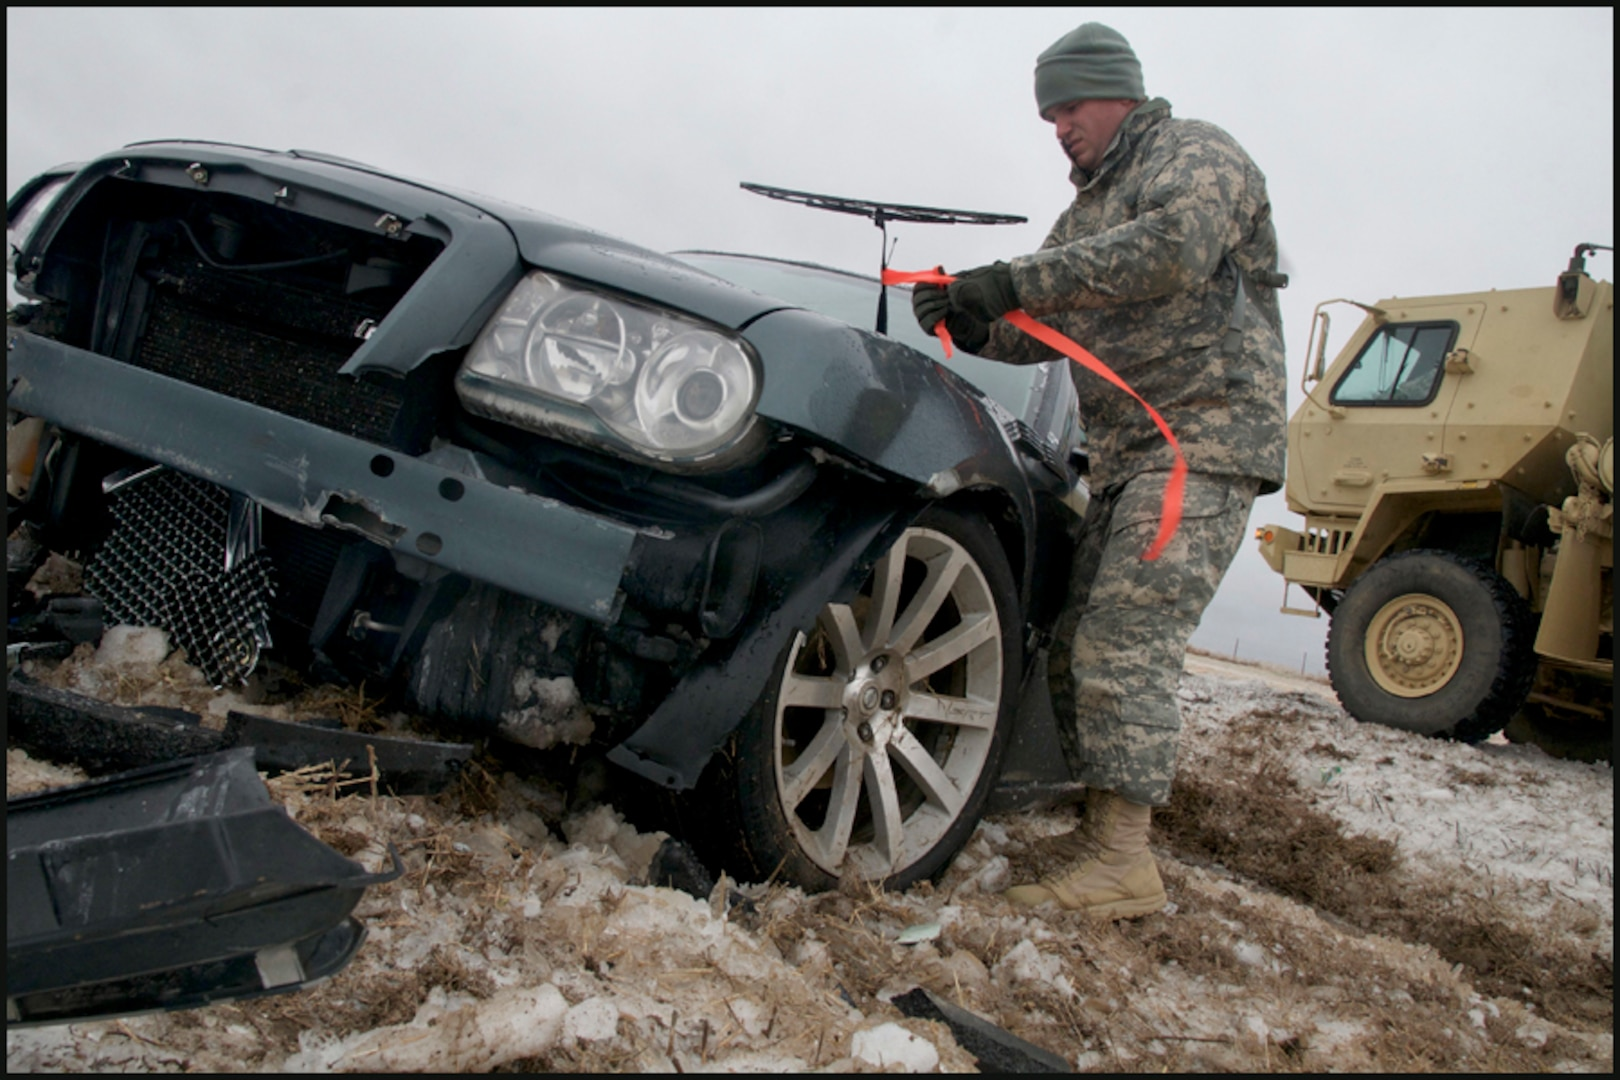 Sgt. Joseph English, of Newalla, Oklahoma, ties a fluorescent ribbon to a wrecked car, marking it as searched and clear of passengers while he and other Soldiers patrolled a section of Interstate 35 north of Perry, Okla., Dec. 28, 2015.